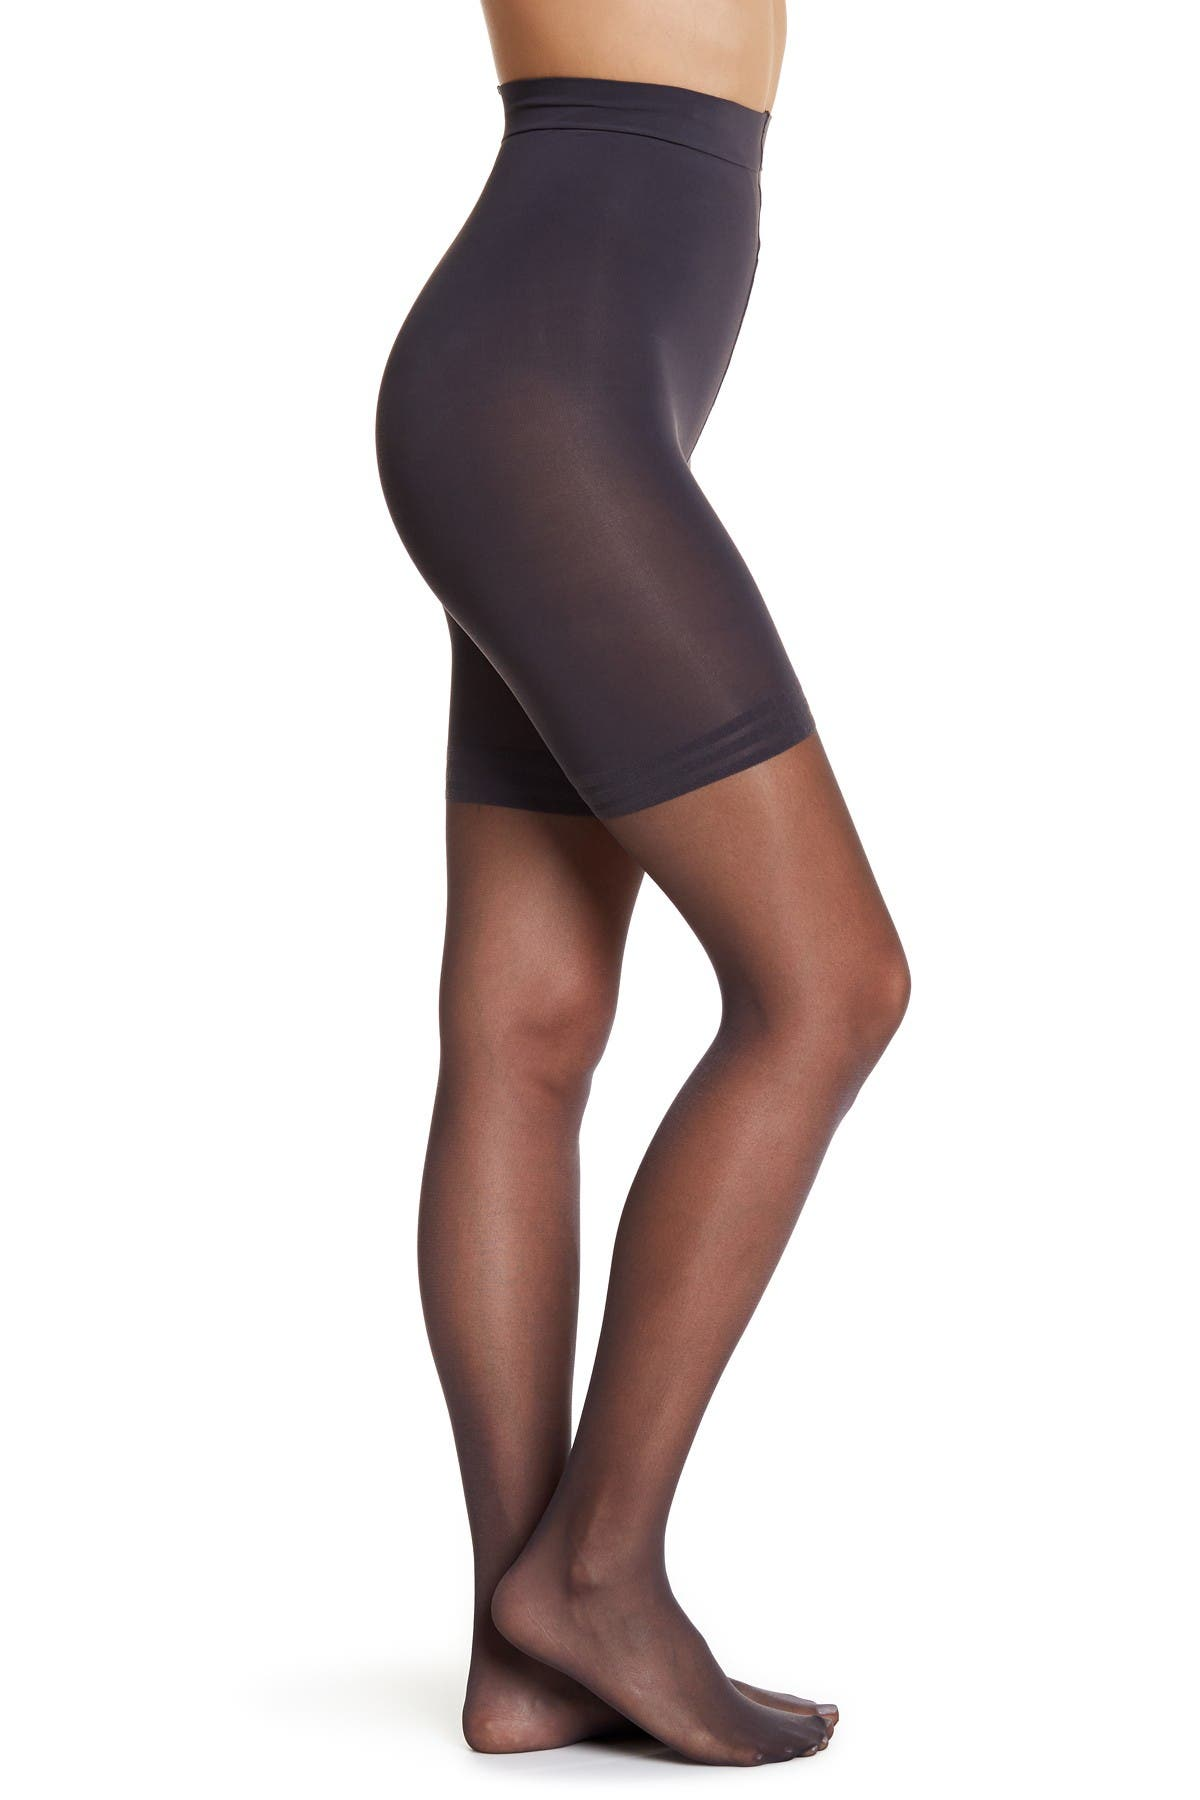 Style OEO18 3 Donna Karan Anti-Cellulite No-Hosiery Toner Pantyhose Onyx Medium